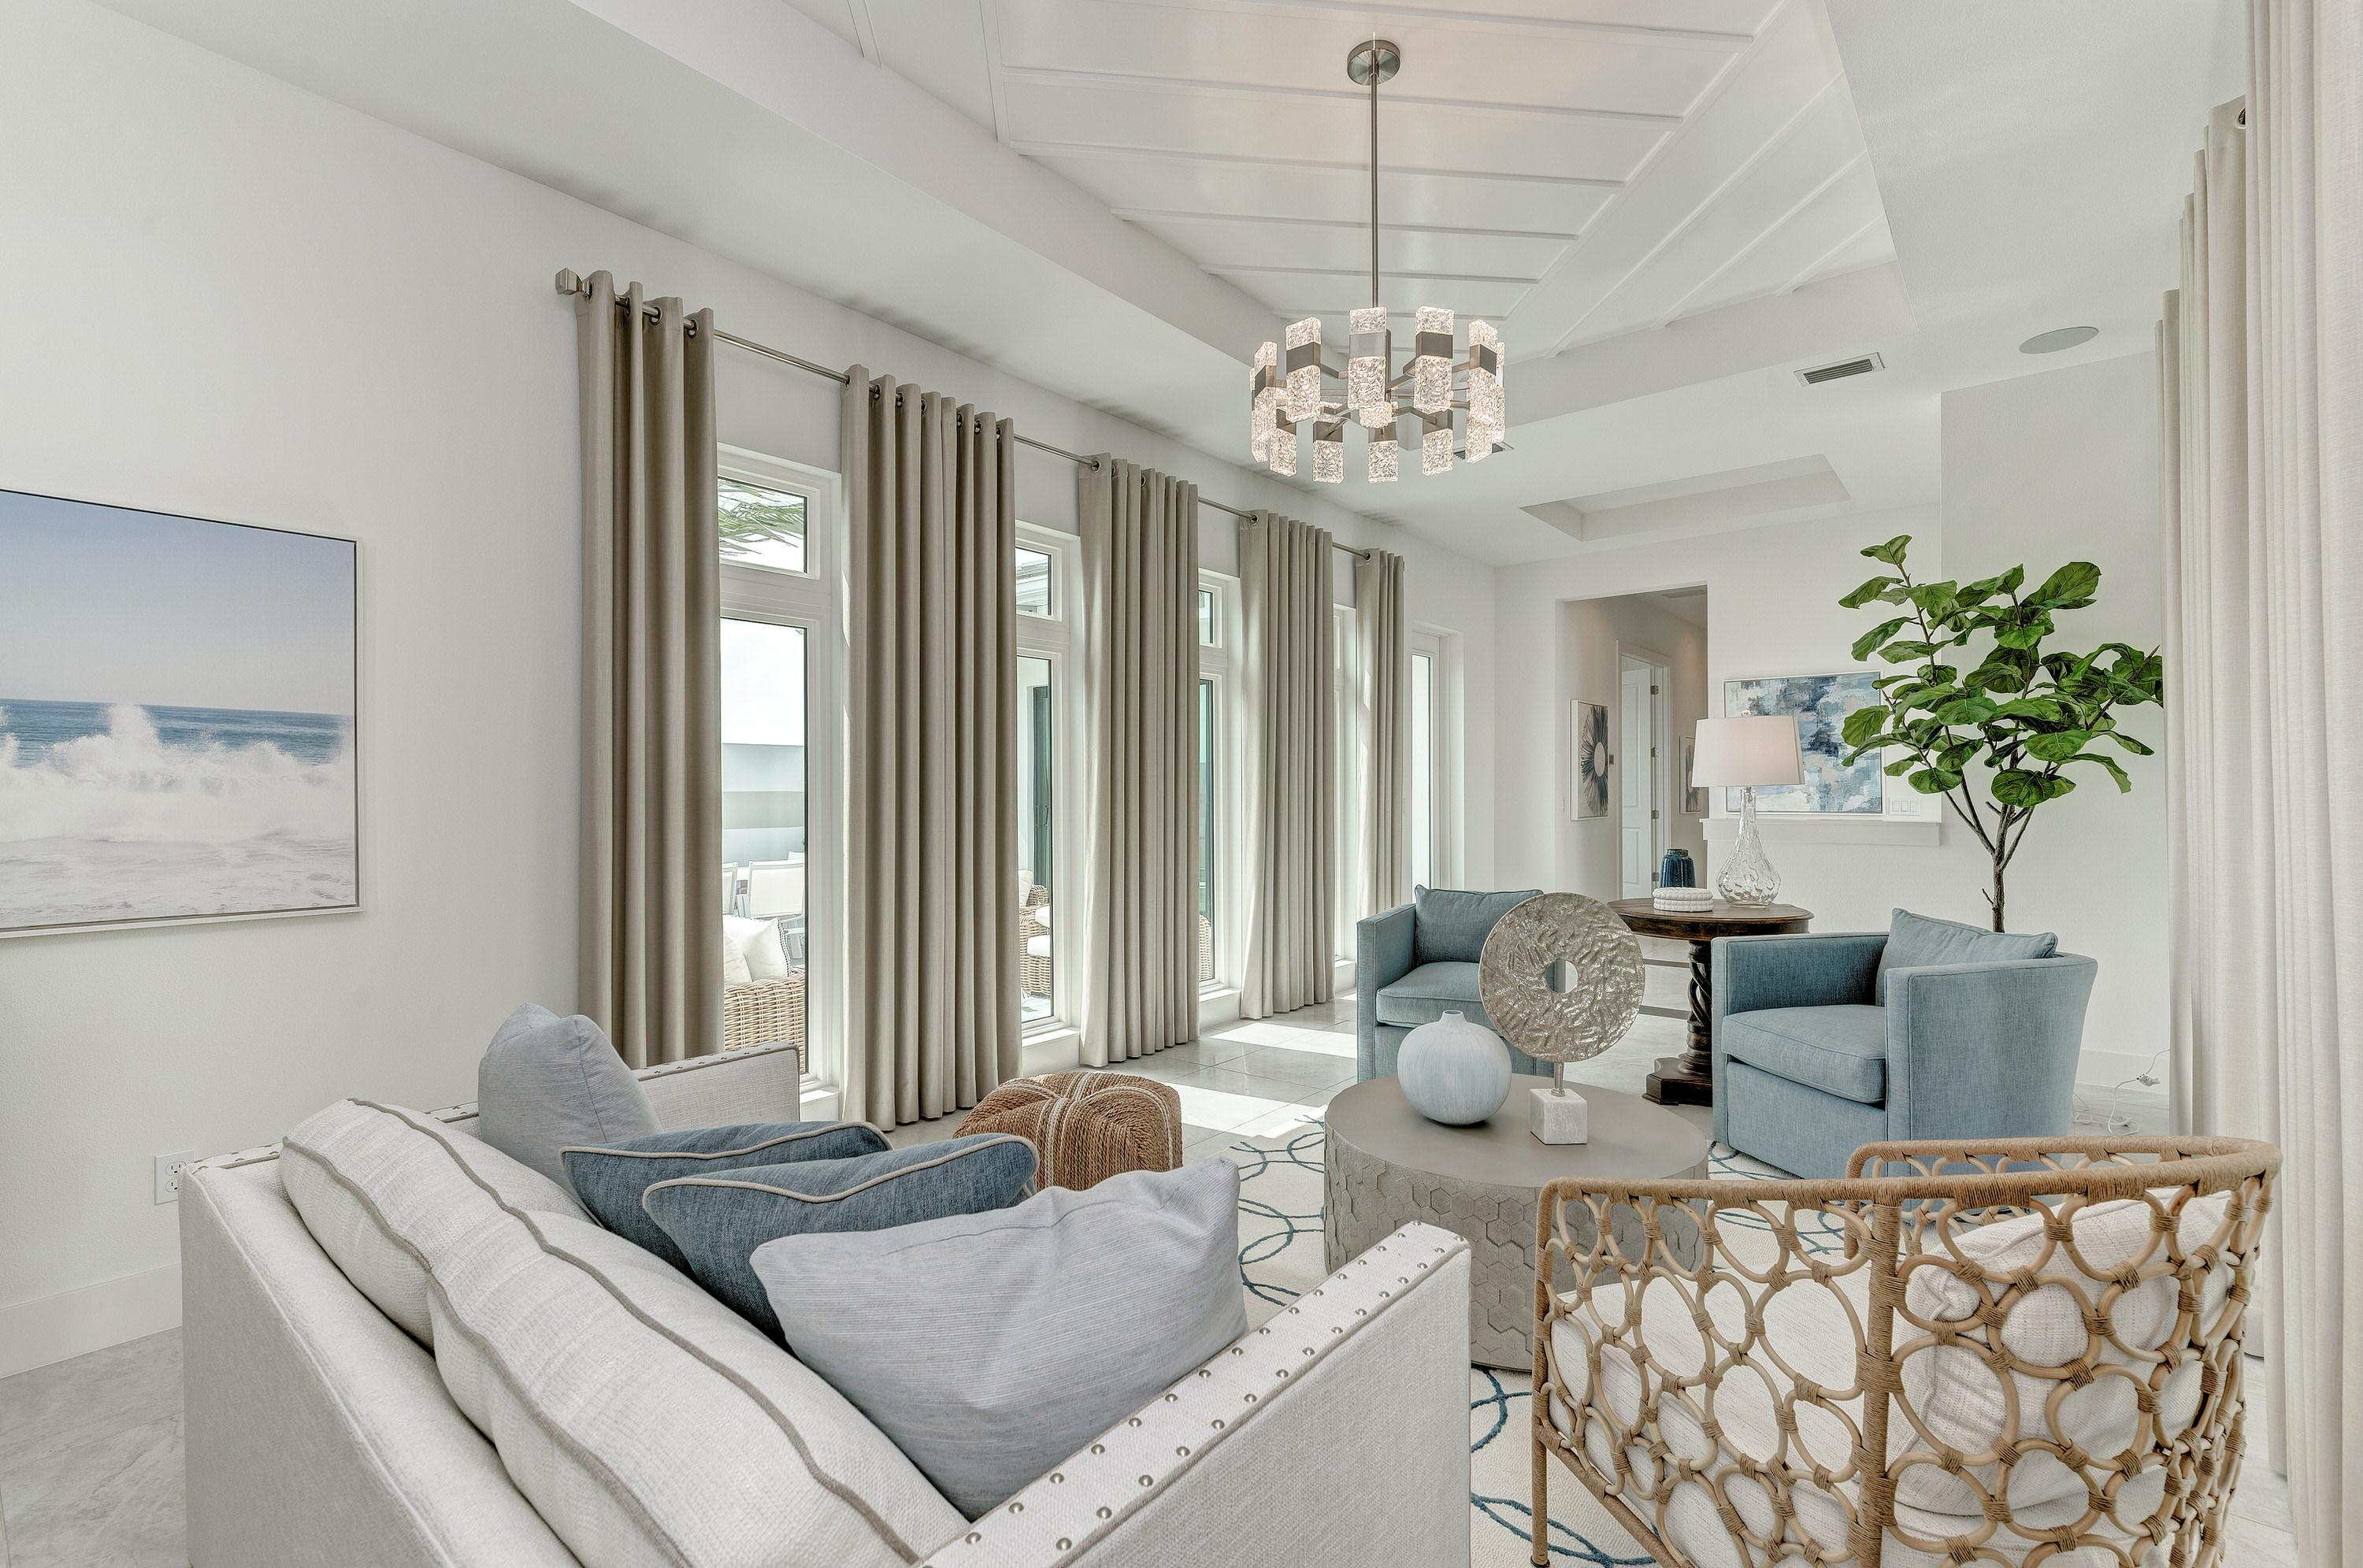 Living Area featured in the Sea Grape By Medallion Home in Sarasota-Bradenton, FL